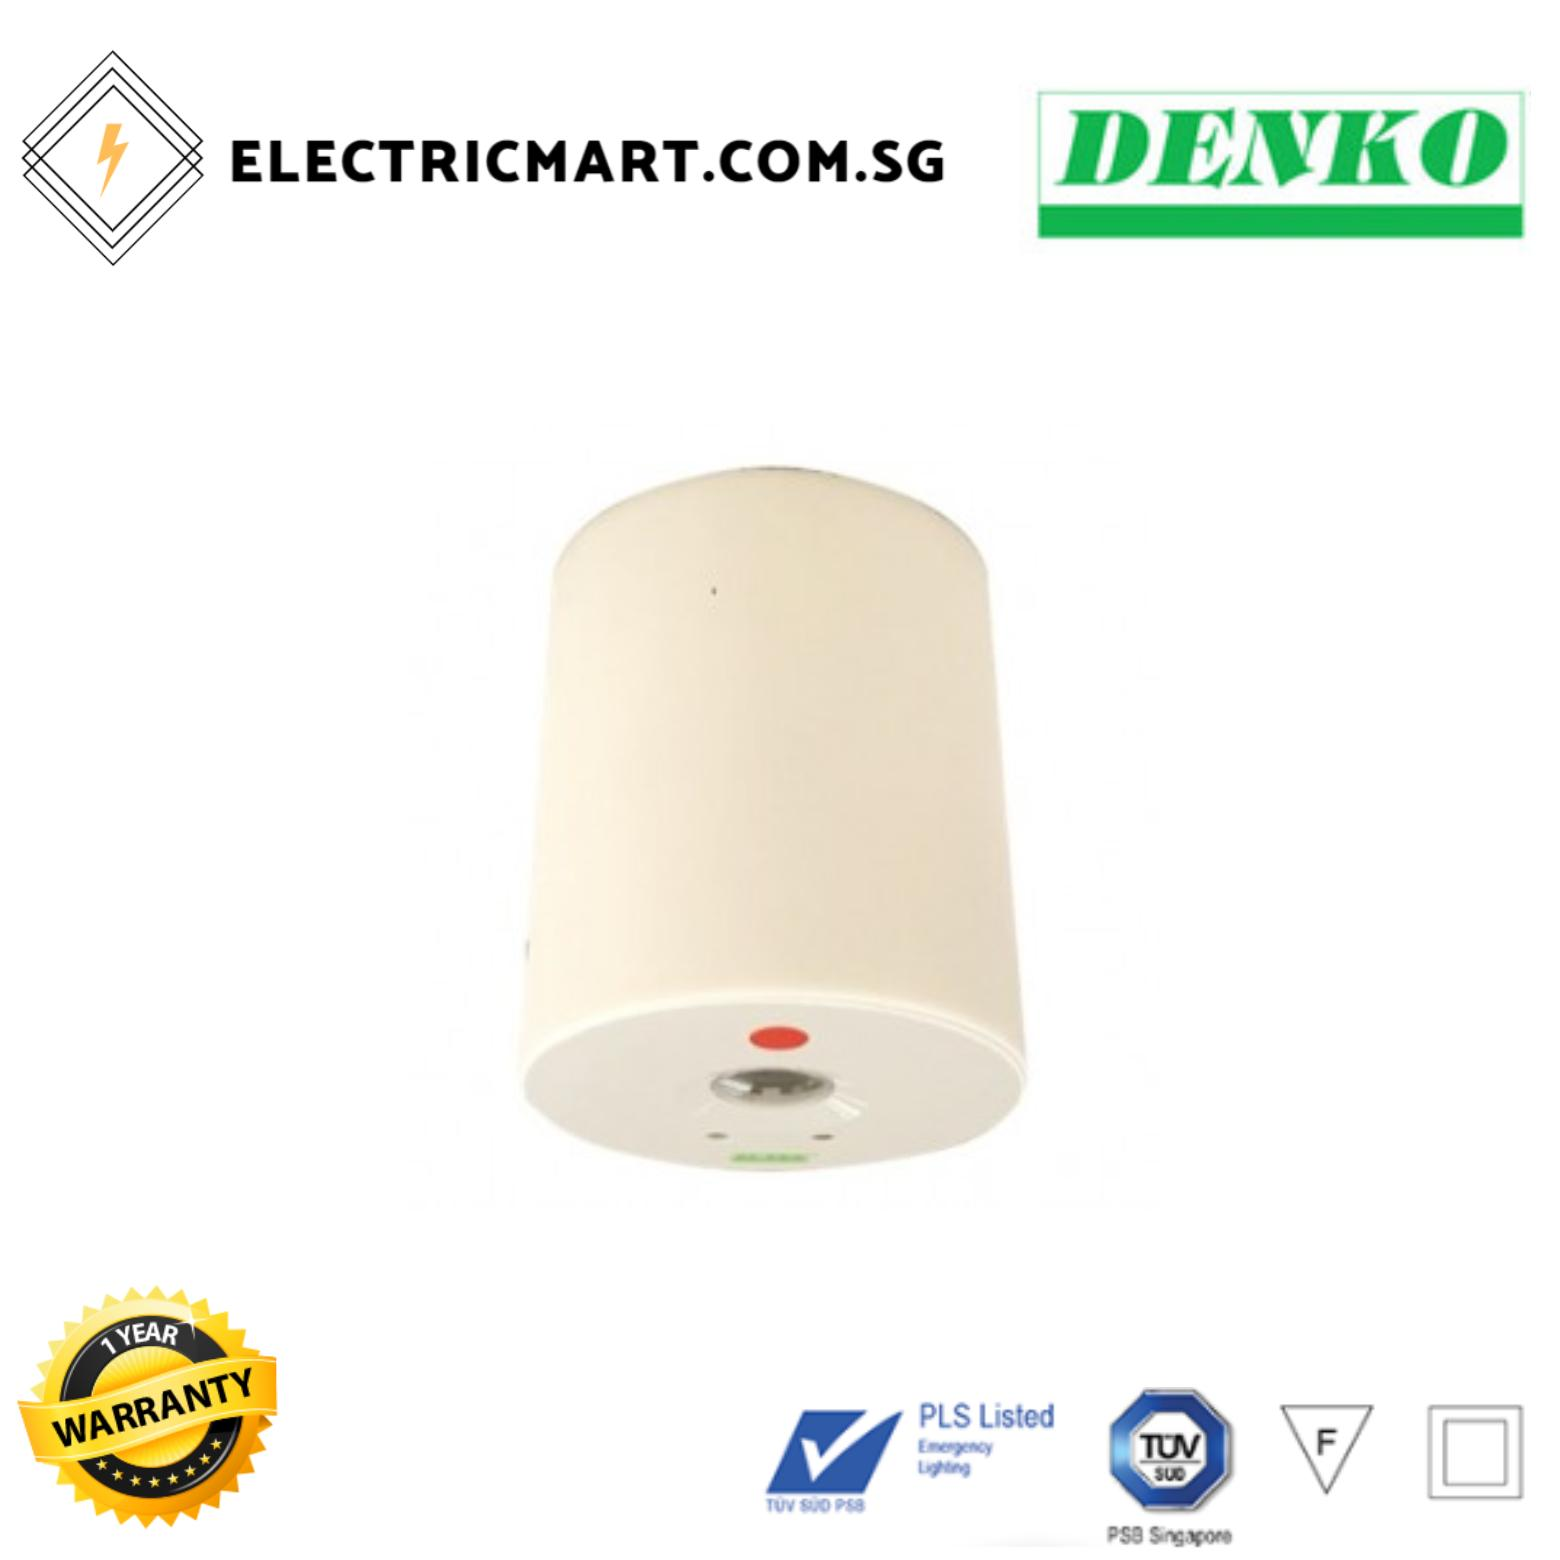 DENKO EmLED - 12NM EASI LED Surface Emergency Light